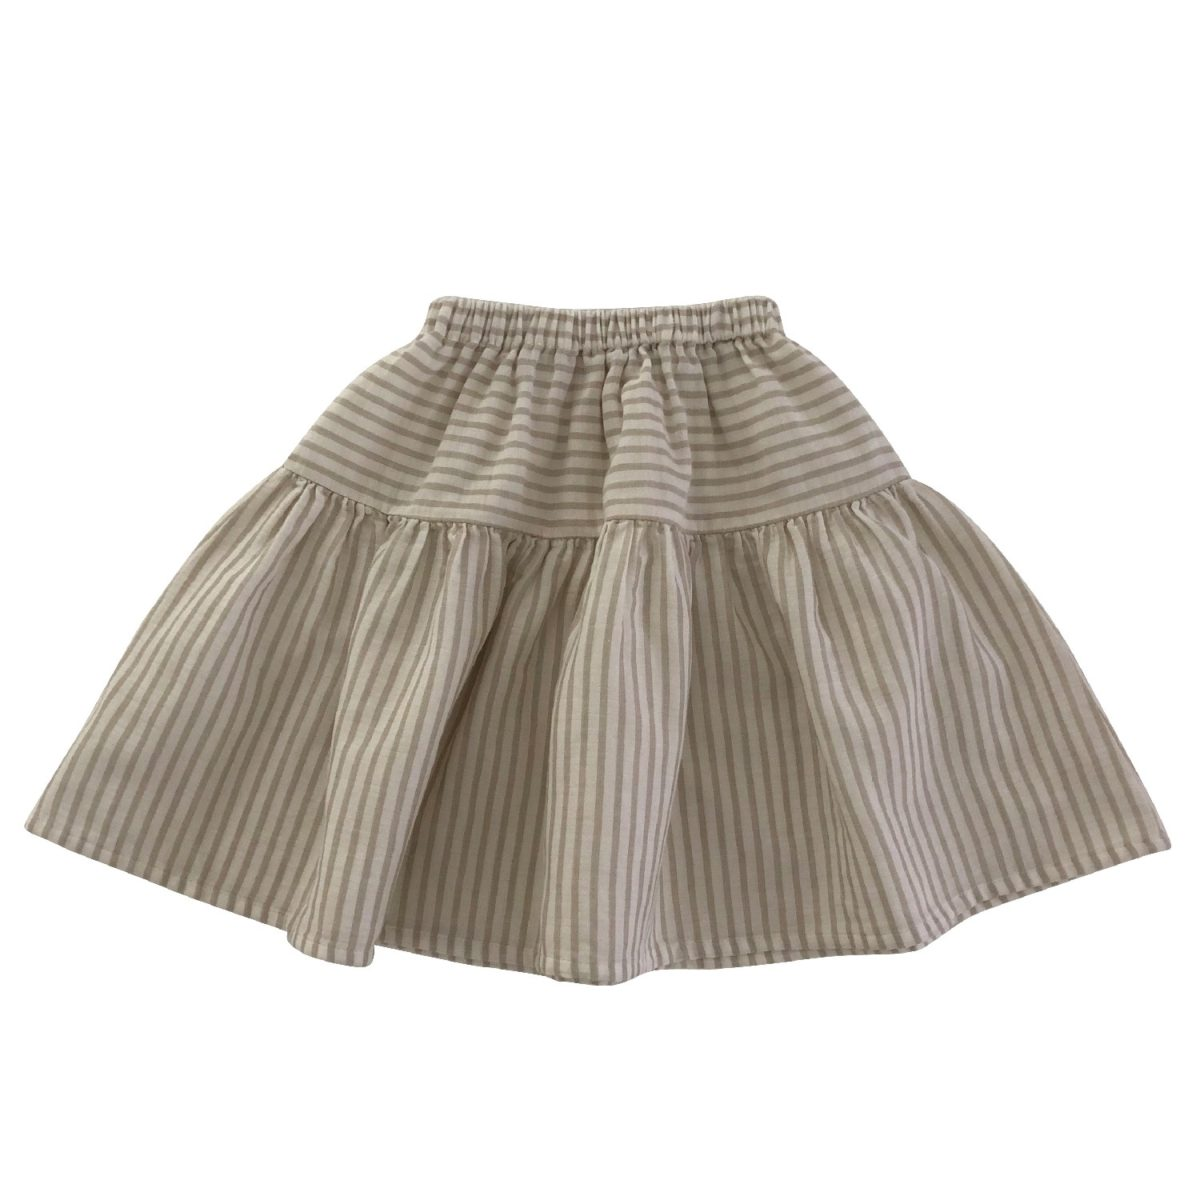 Nala Skirt, Sandy Stripes